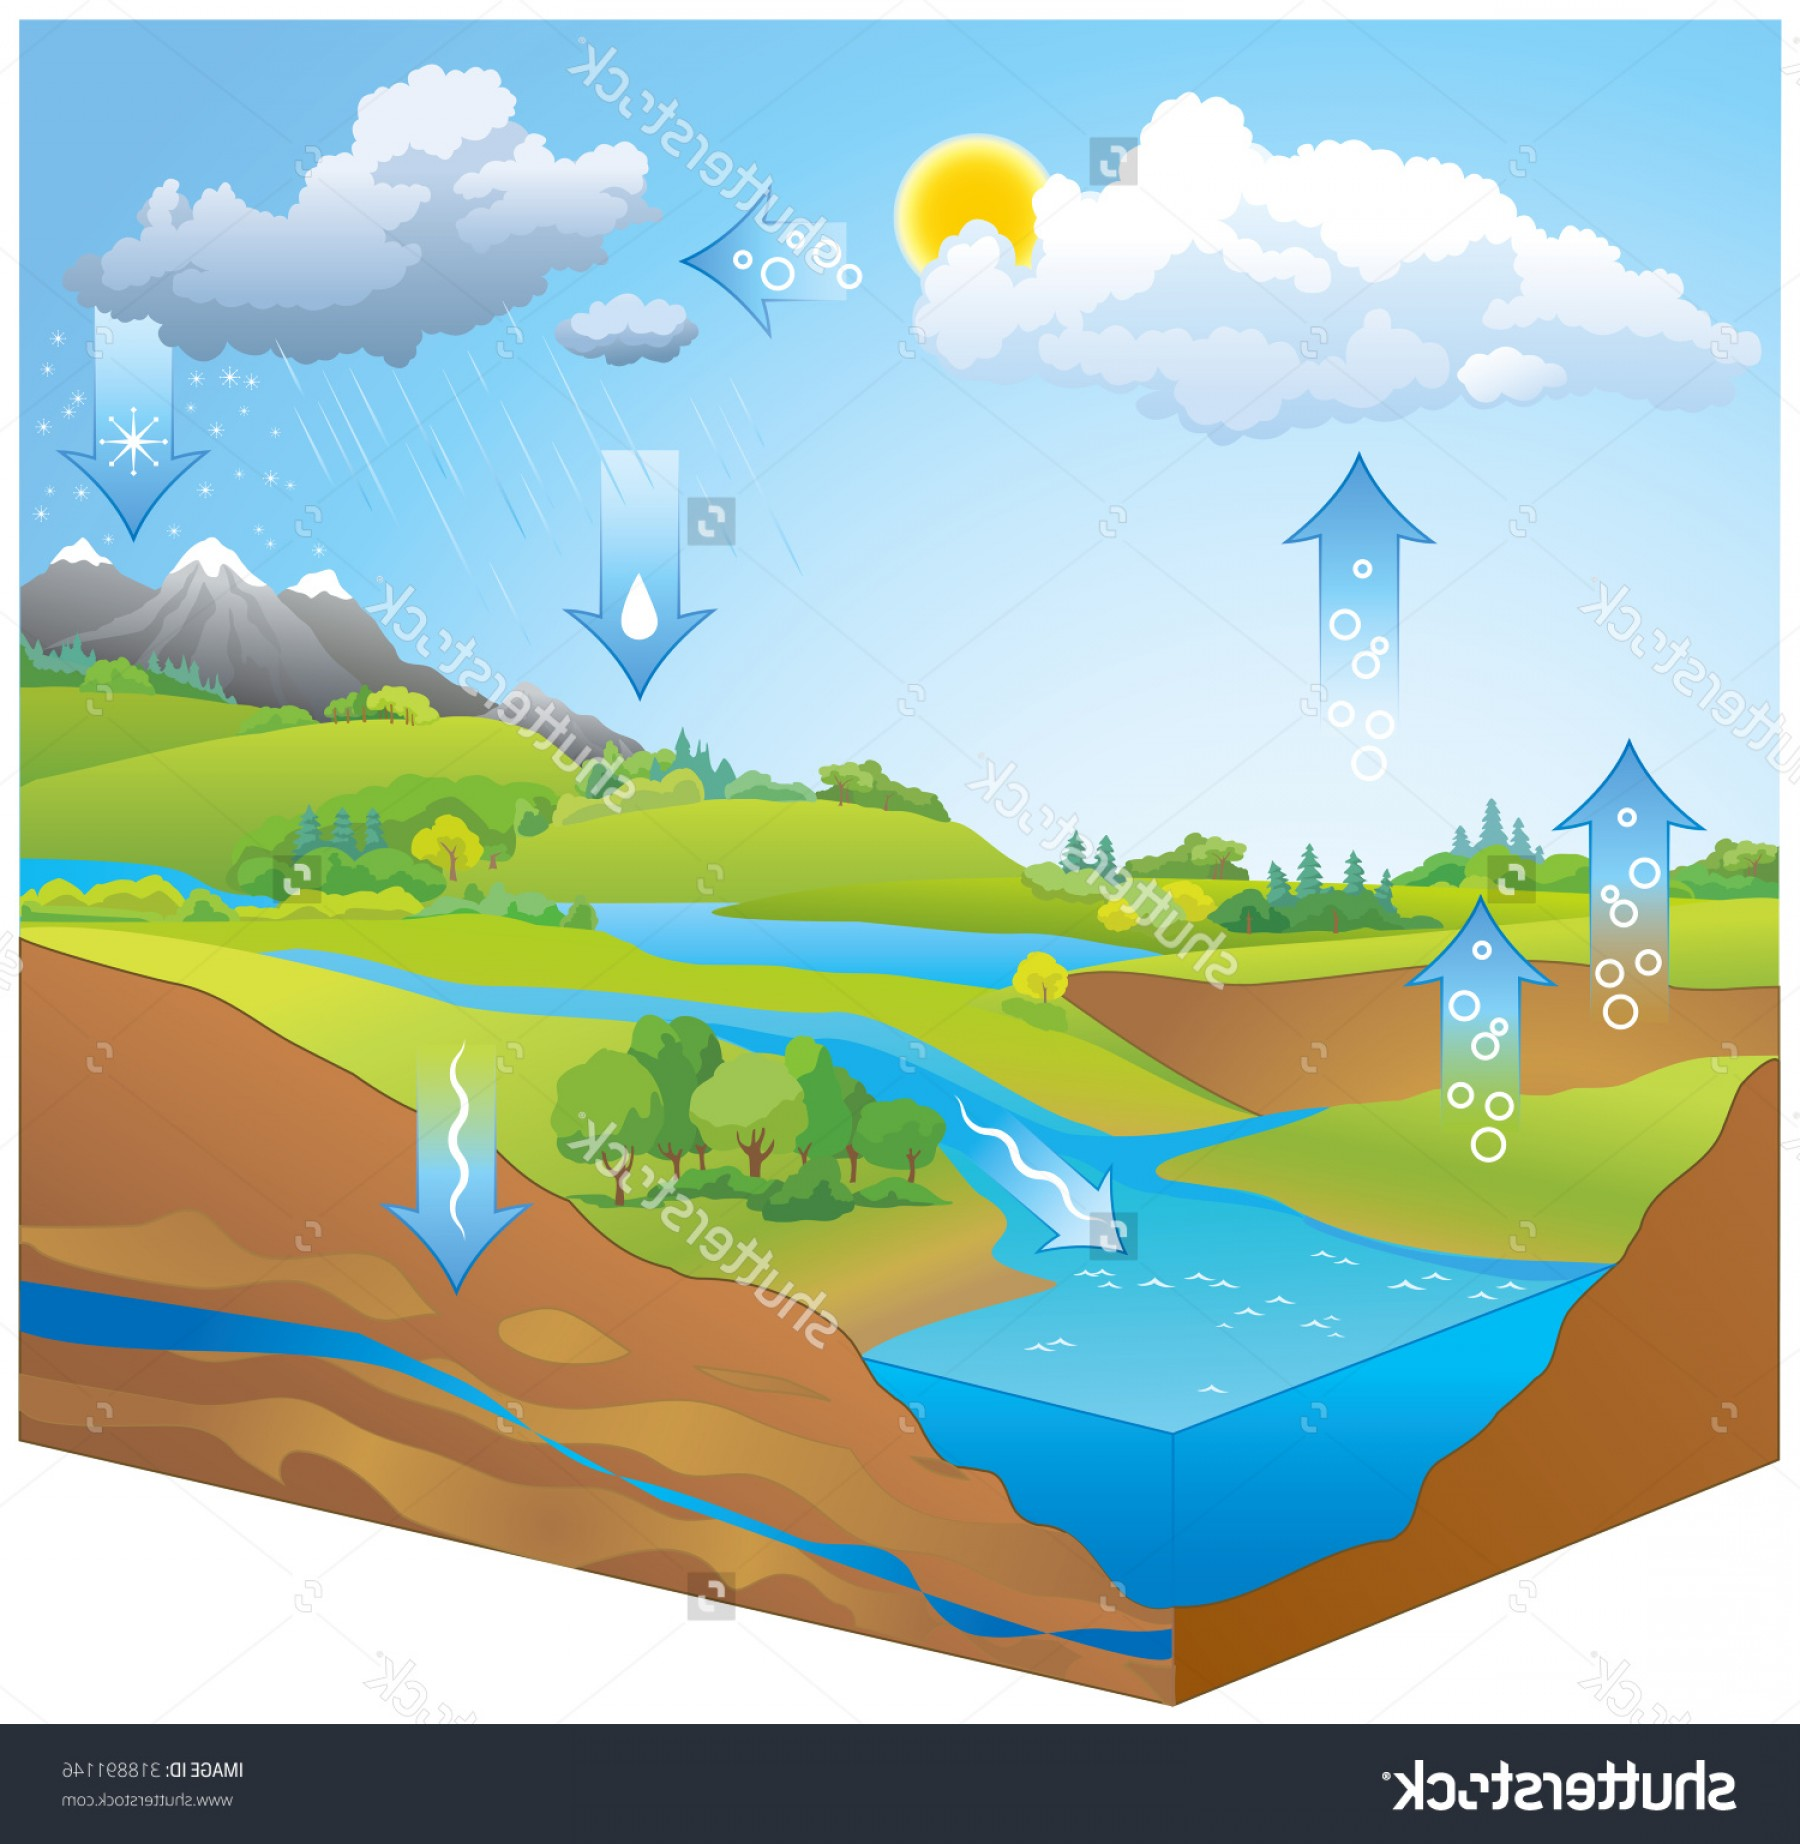 Free Stock Vector The Water Cycle Diagram Showing Precipitation.